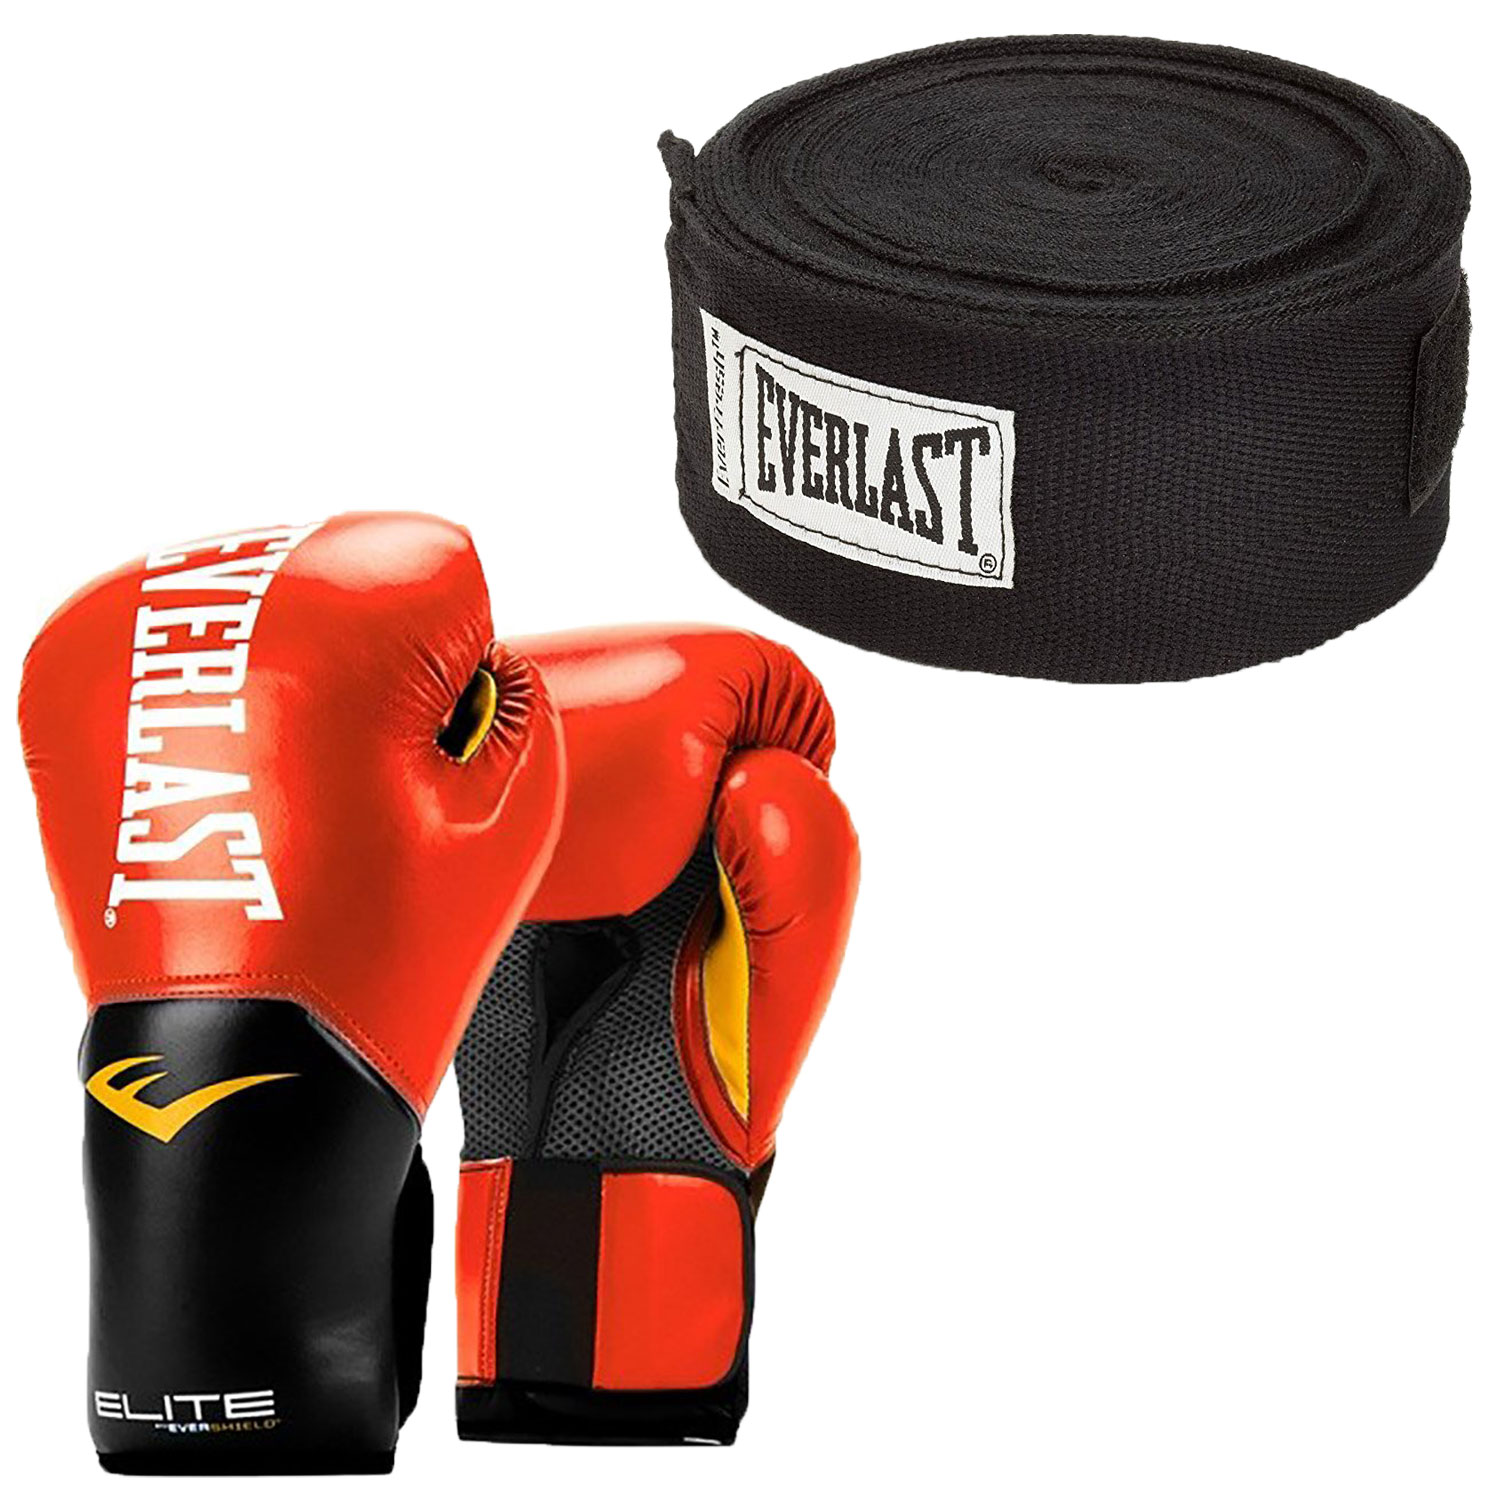 Red Everlast Elite Pro Style Leather Training Boxing Gloves Size 14 Ounces